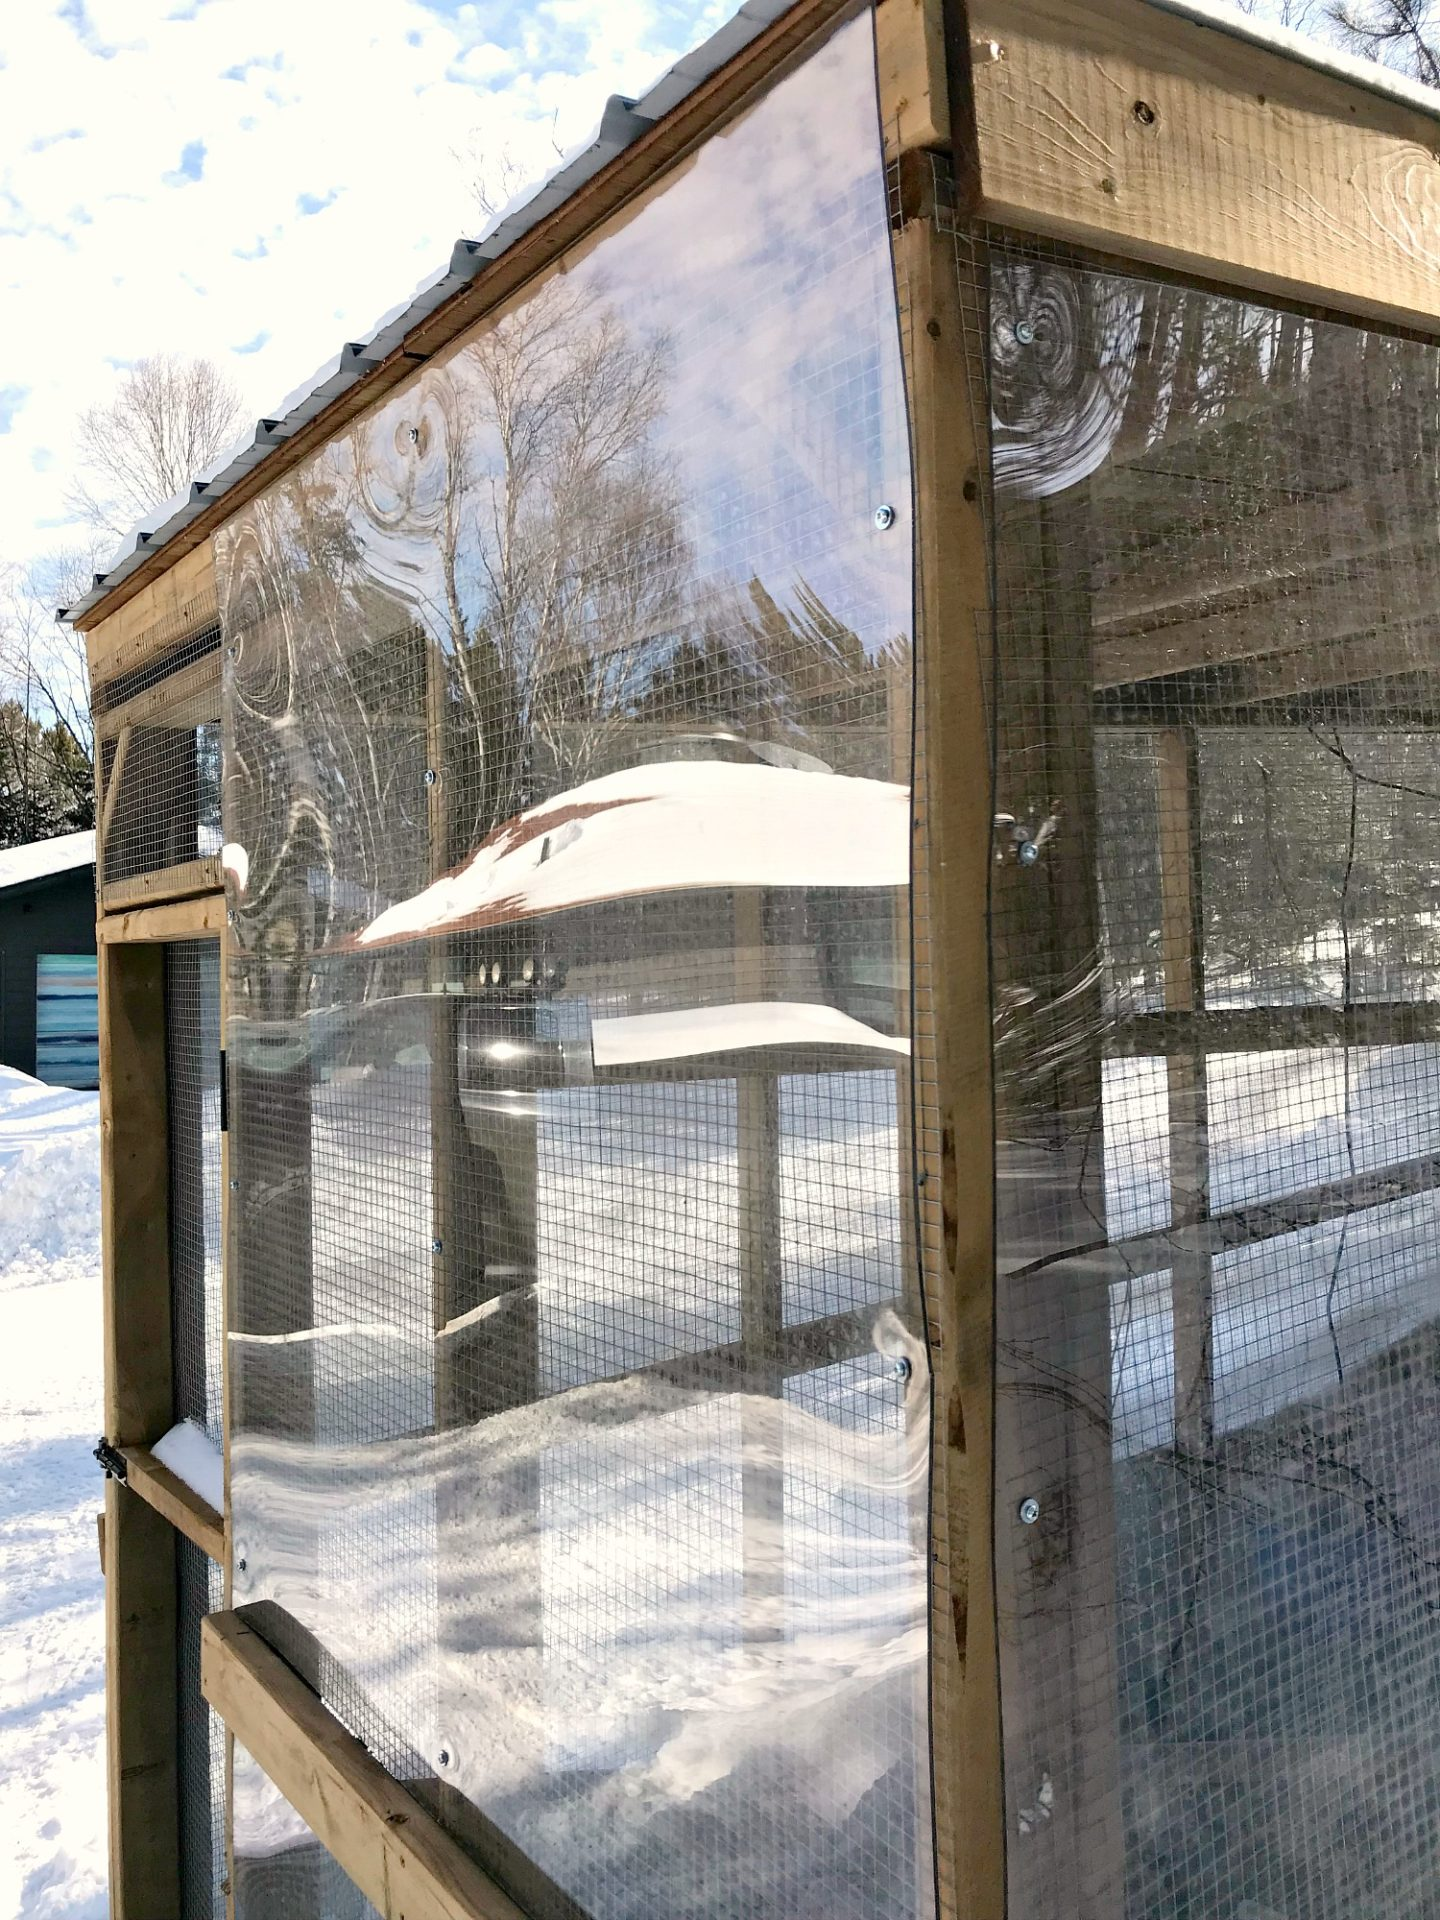 How We Keep Chickens Warm in Extreme Cold Winter Weather